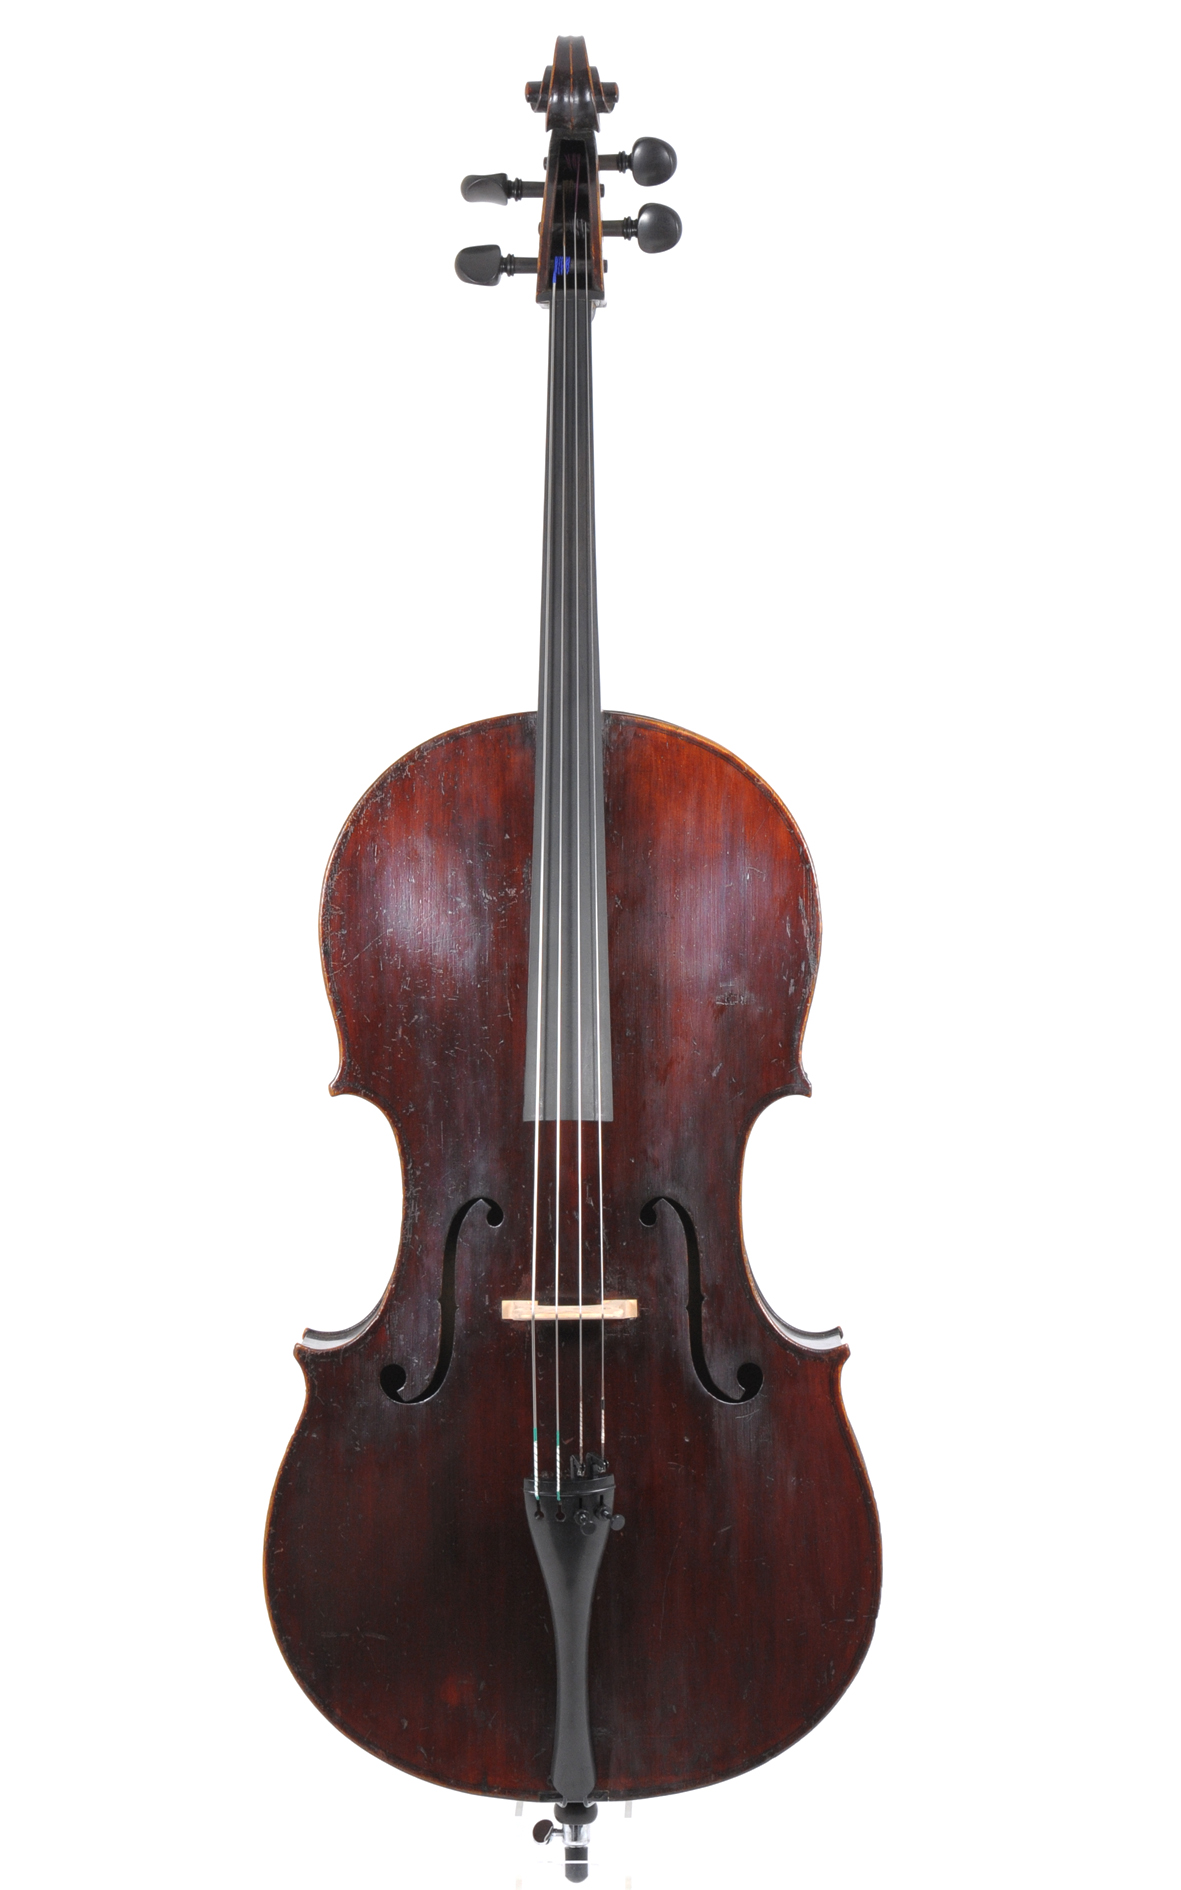 historic english cello 19th century cellos england